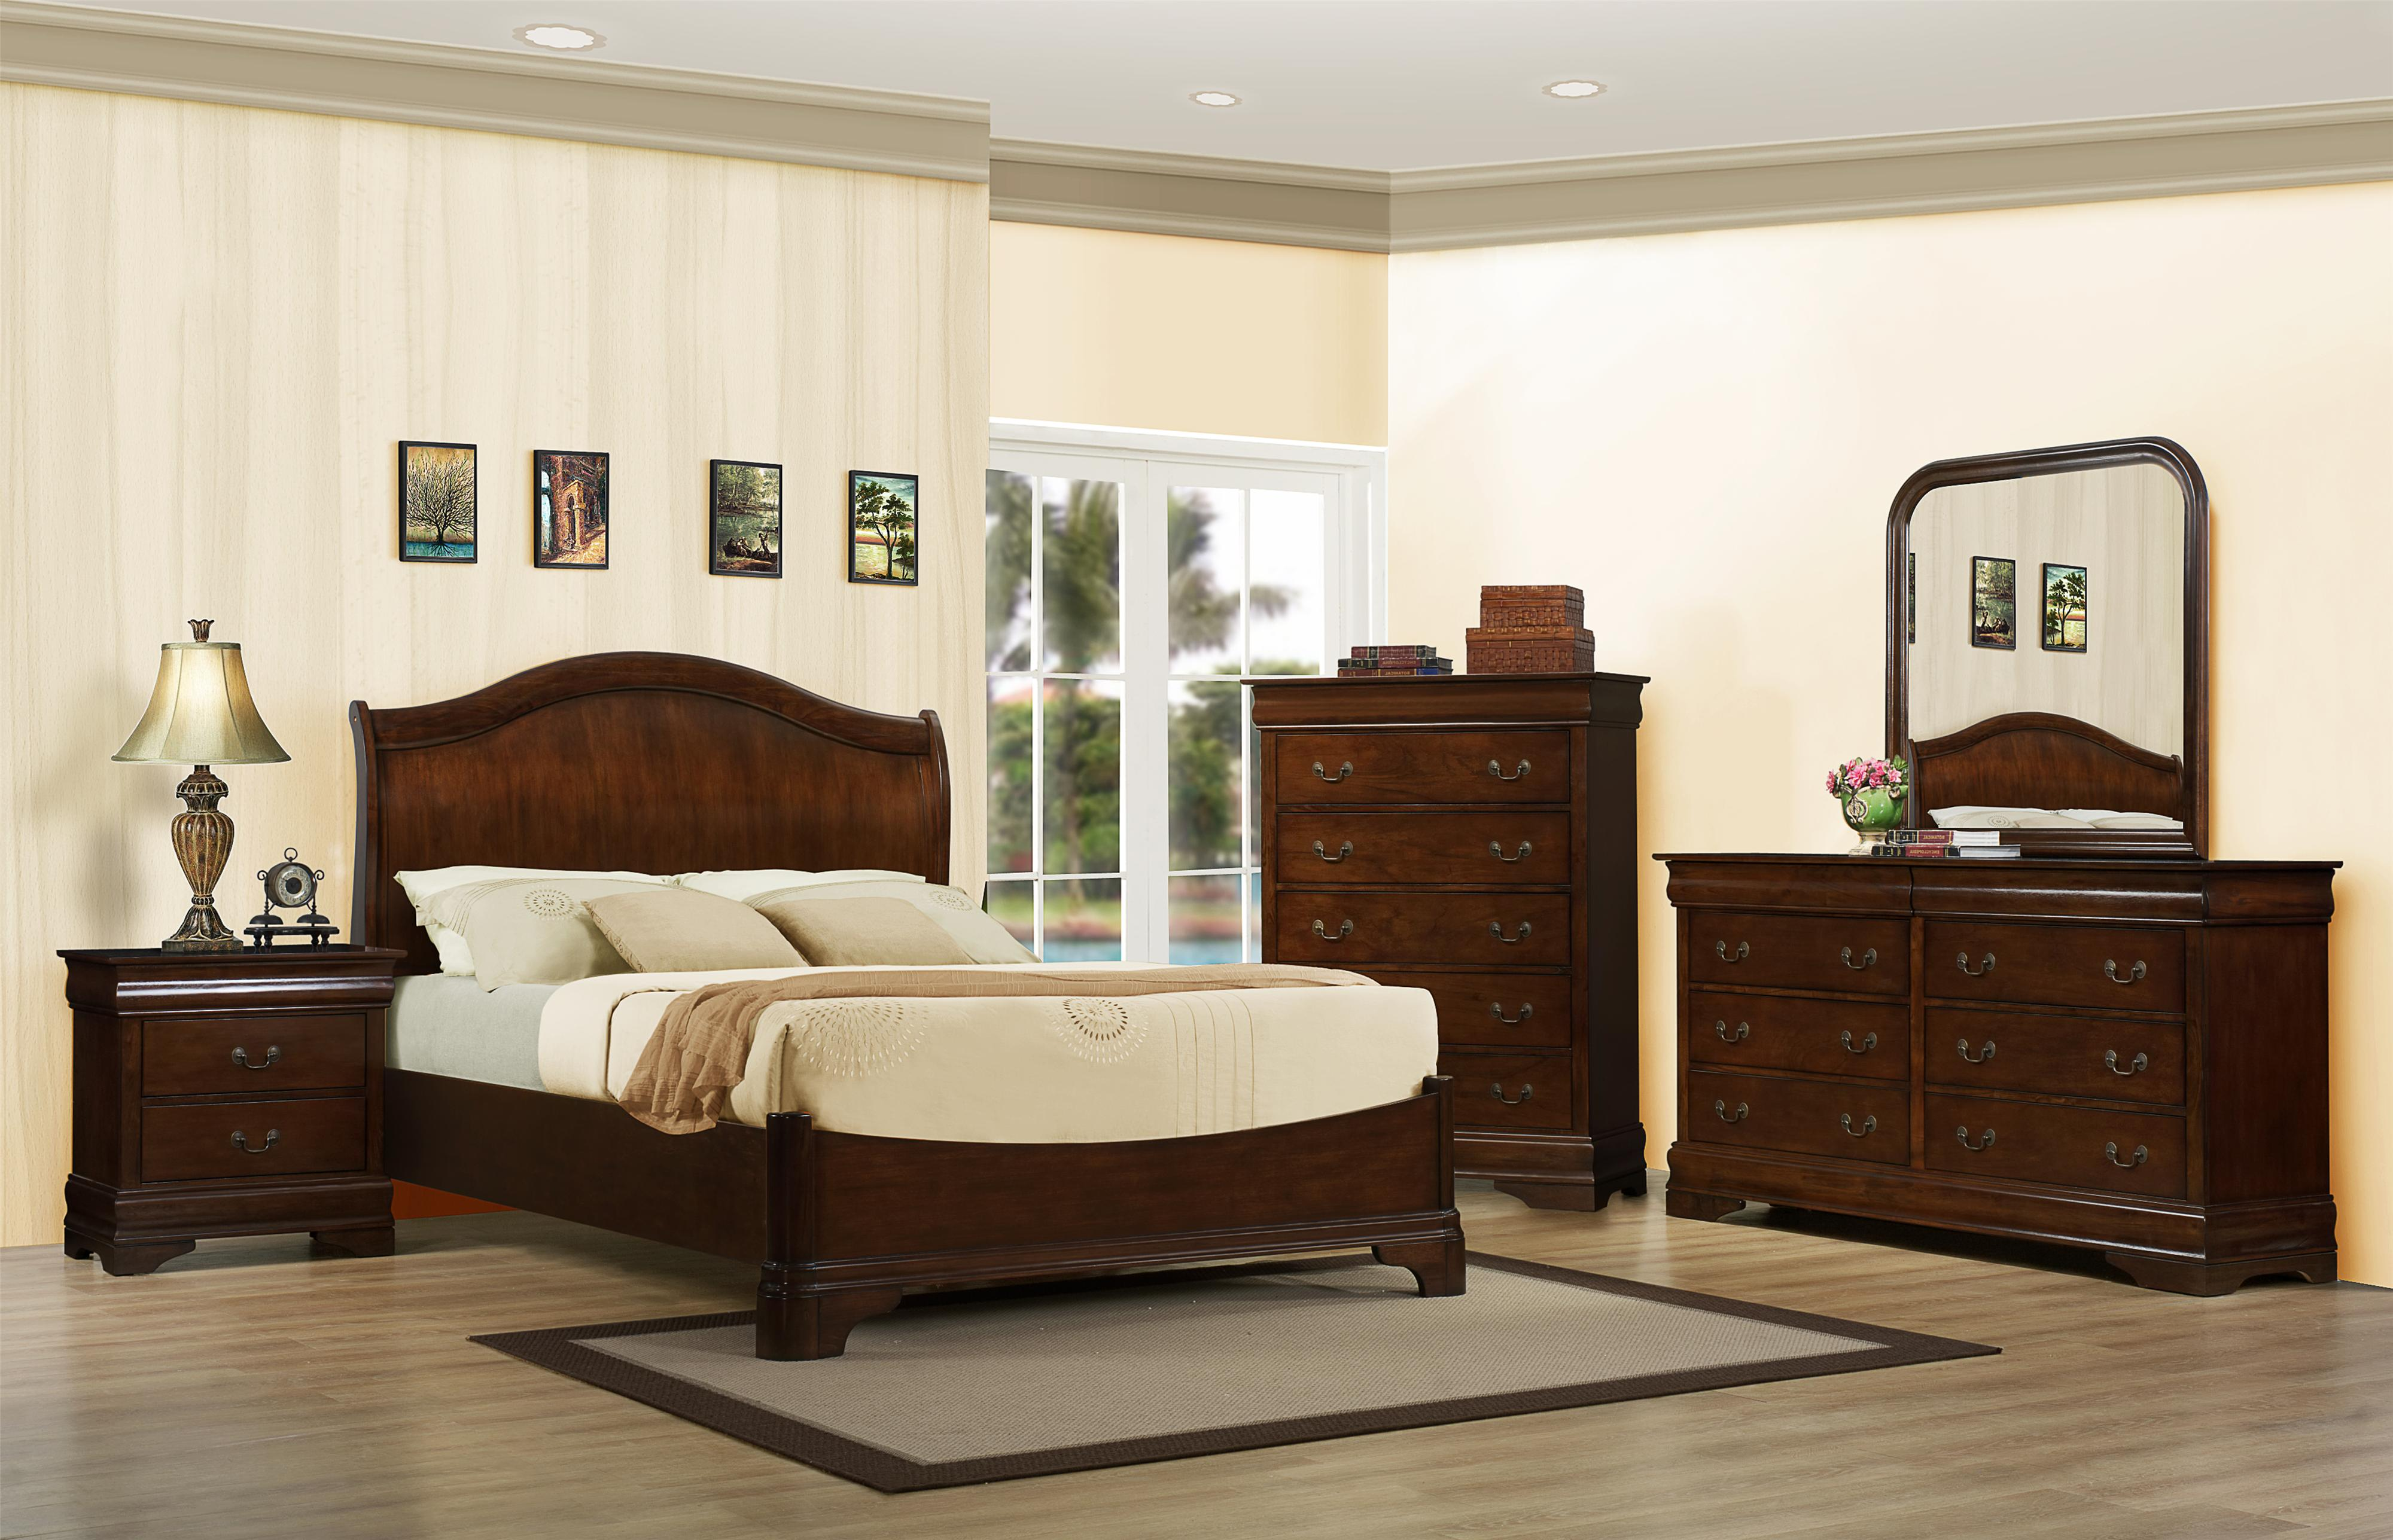 Austin Group Big Louis King Transitional Headboard Bed Bigfurniturewebsite Headboard Footboard